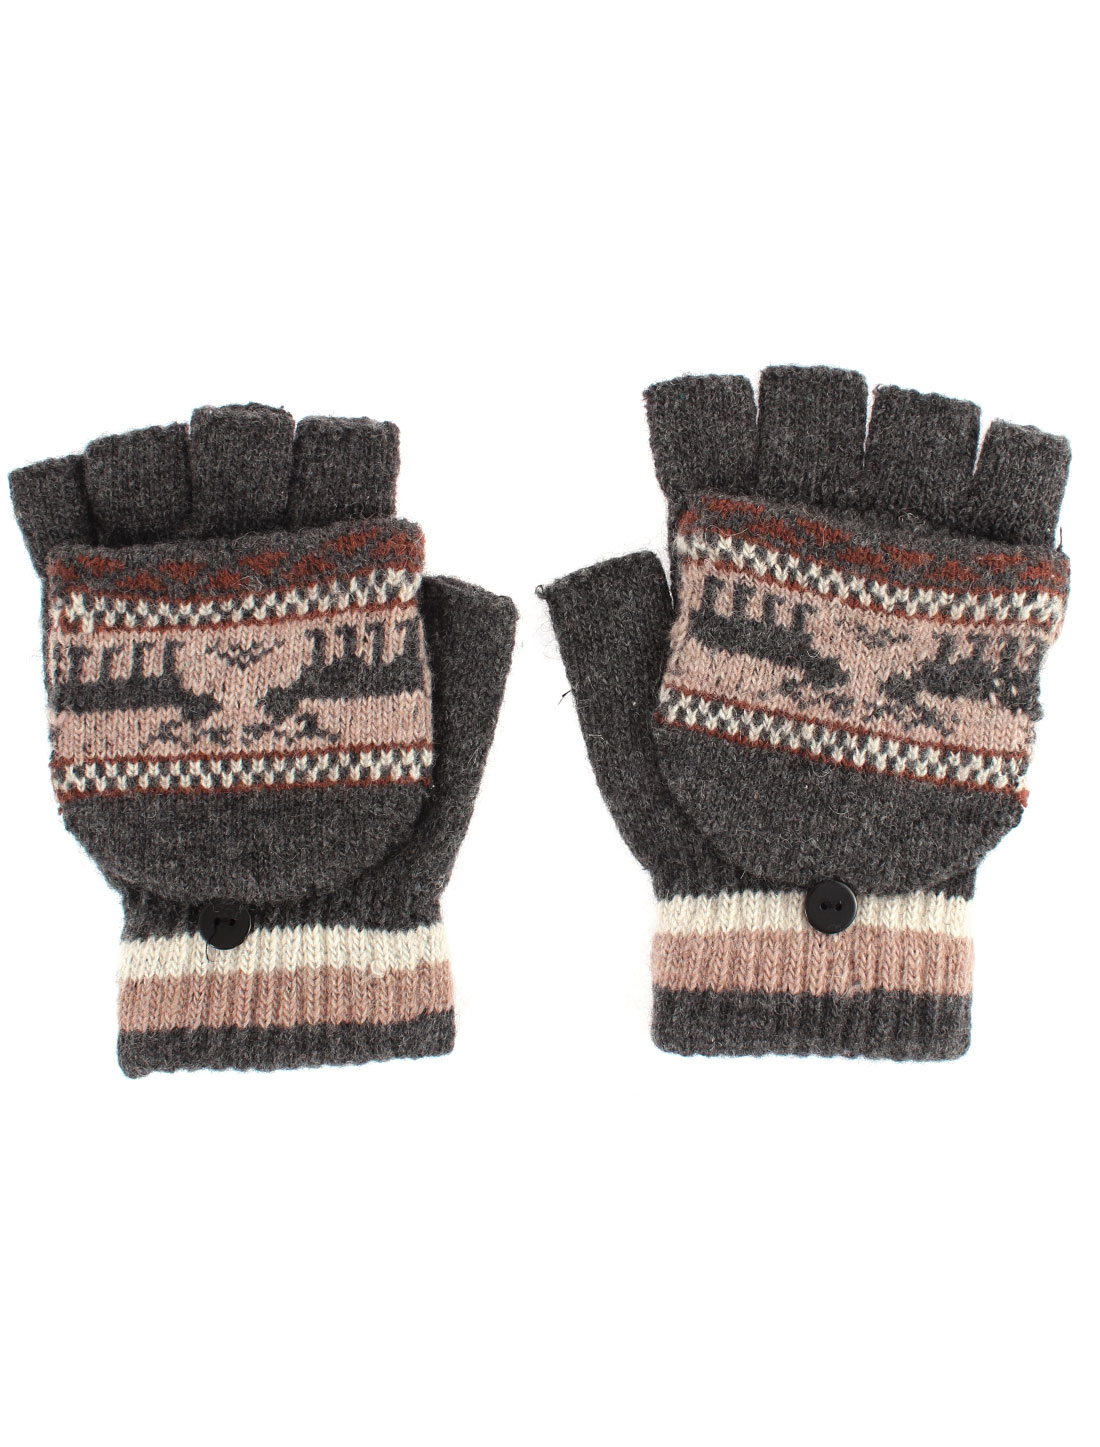 Unisex Deer Pattern Flip Convertible Half-finger Knitted Gloves Gray Pair